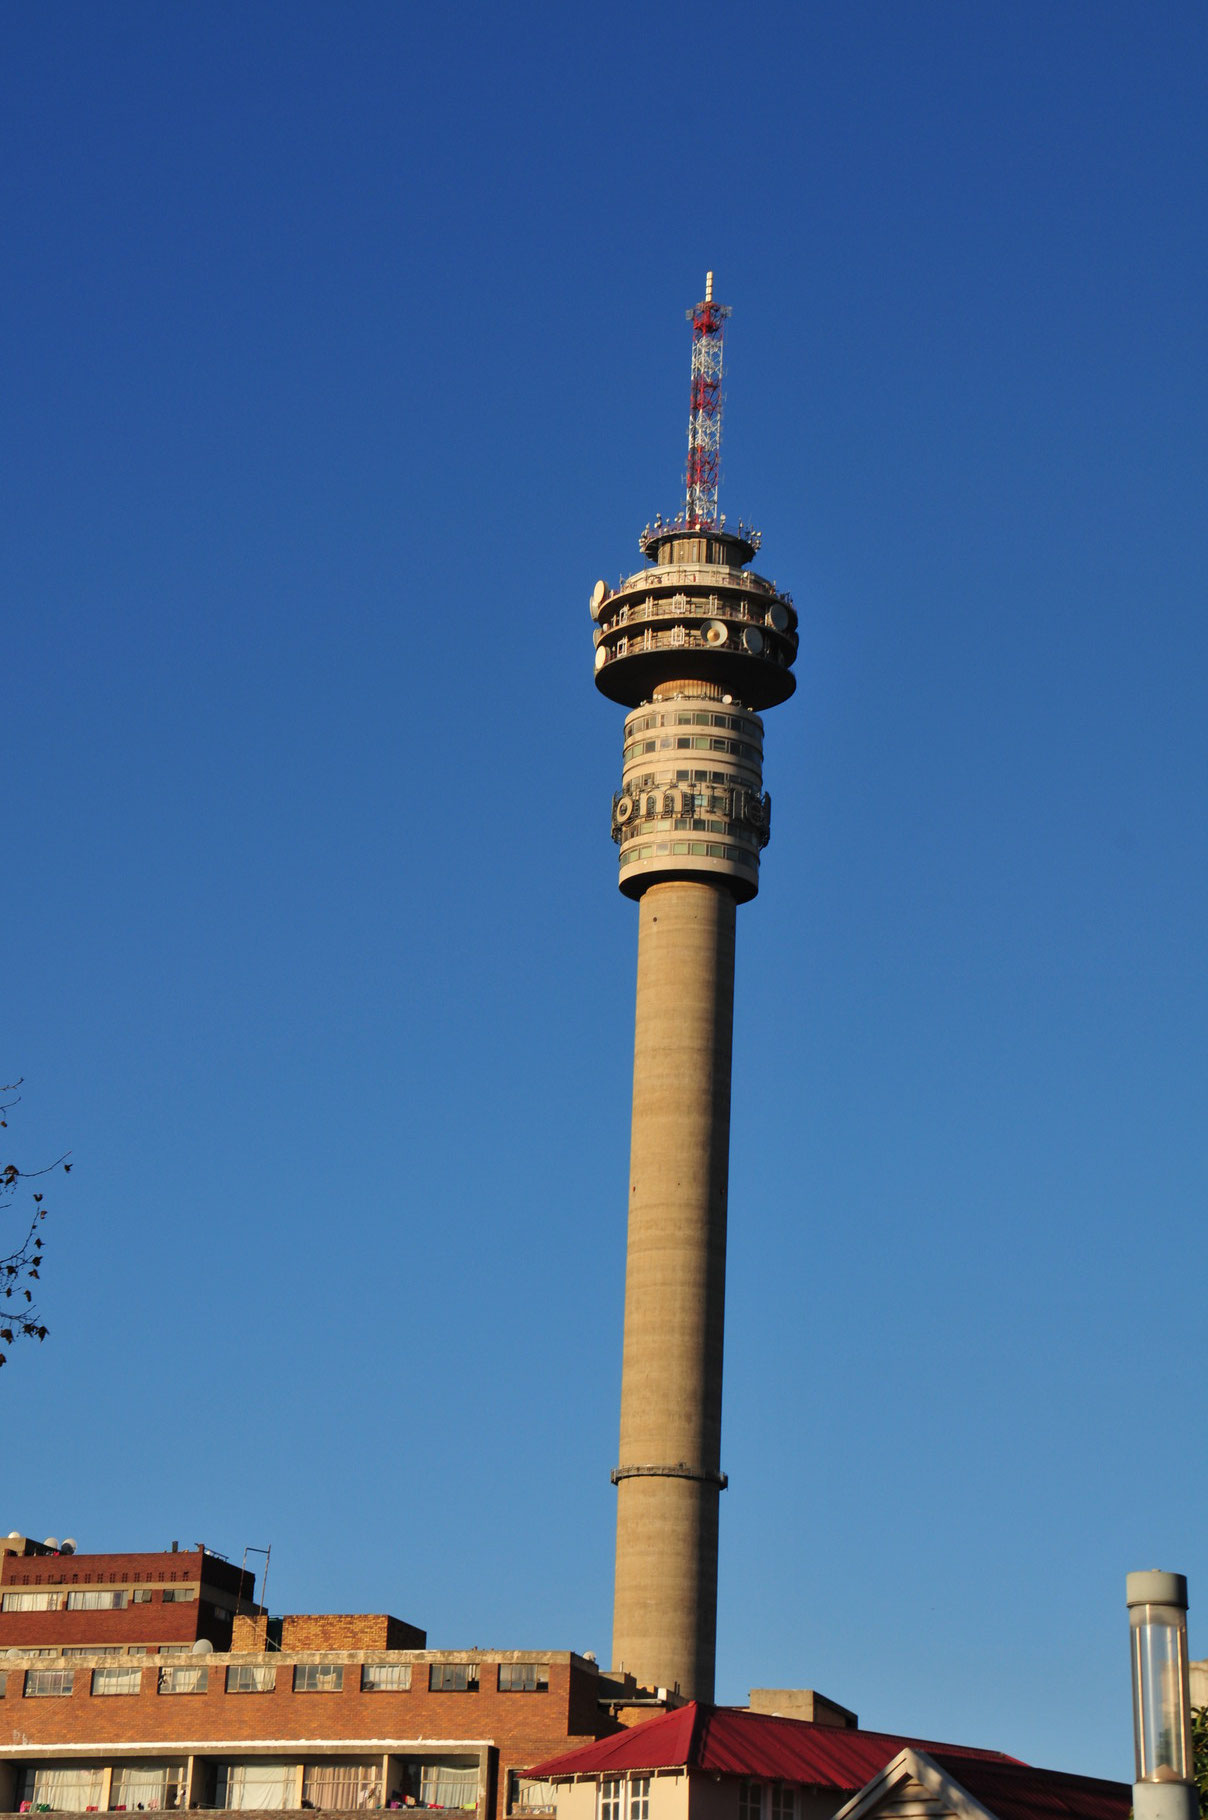 Joburg Telkom Tower